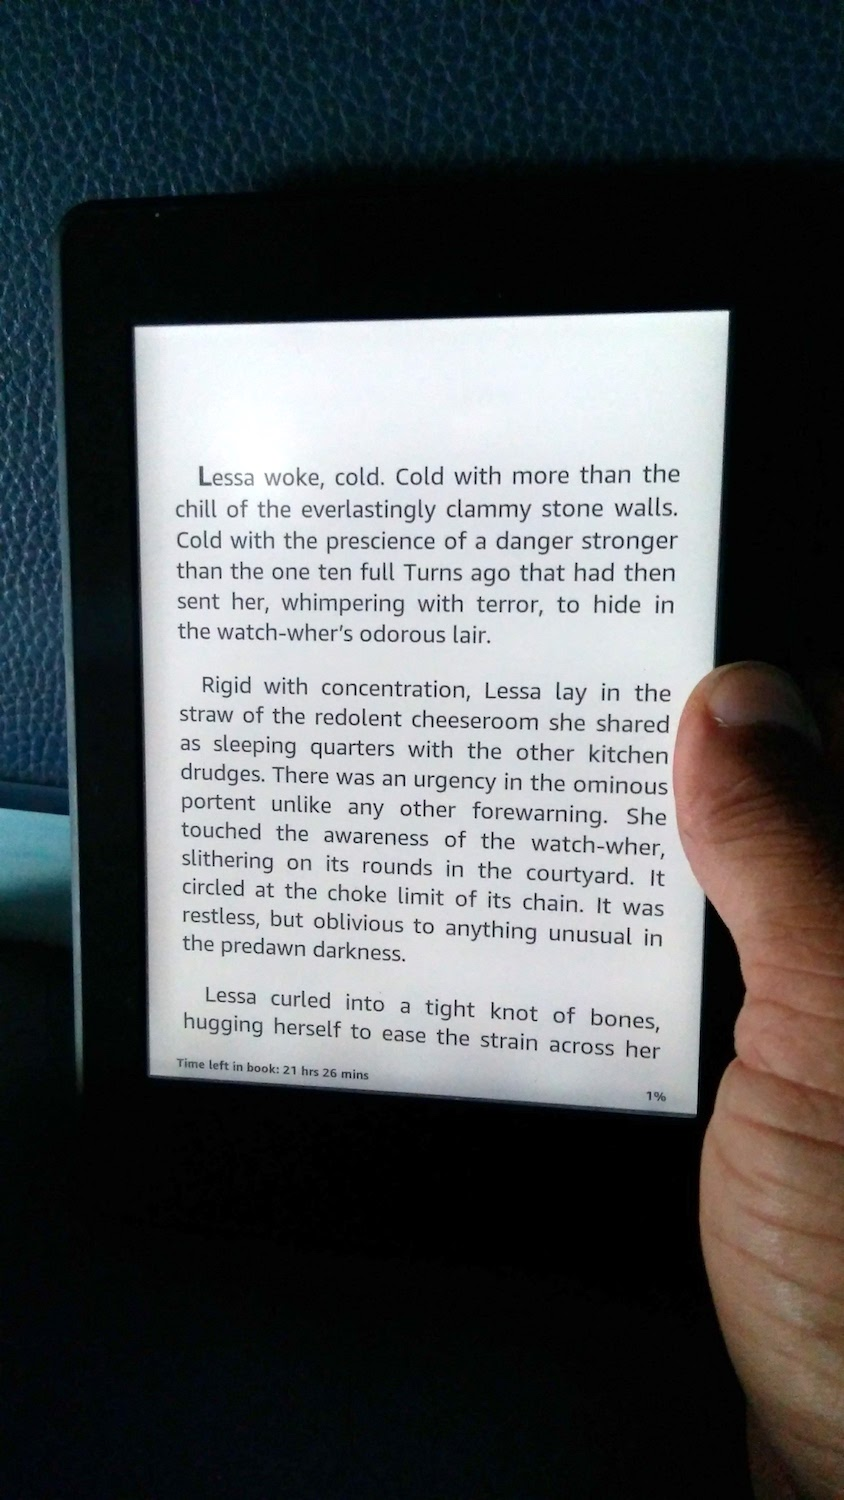 Forum on this topic: Why the Kindle is perfect for book , why-the-kindle-is-perfect-for-book/